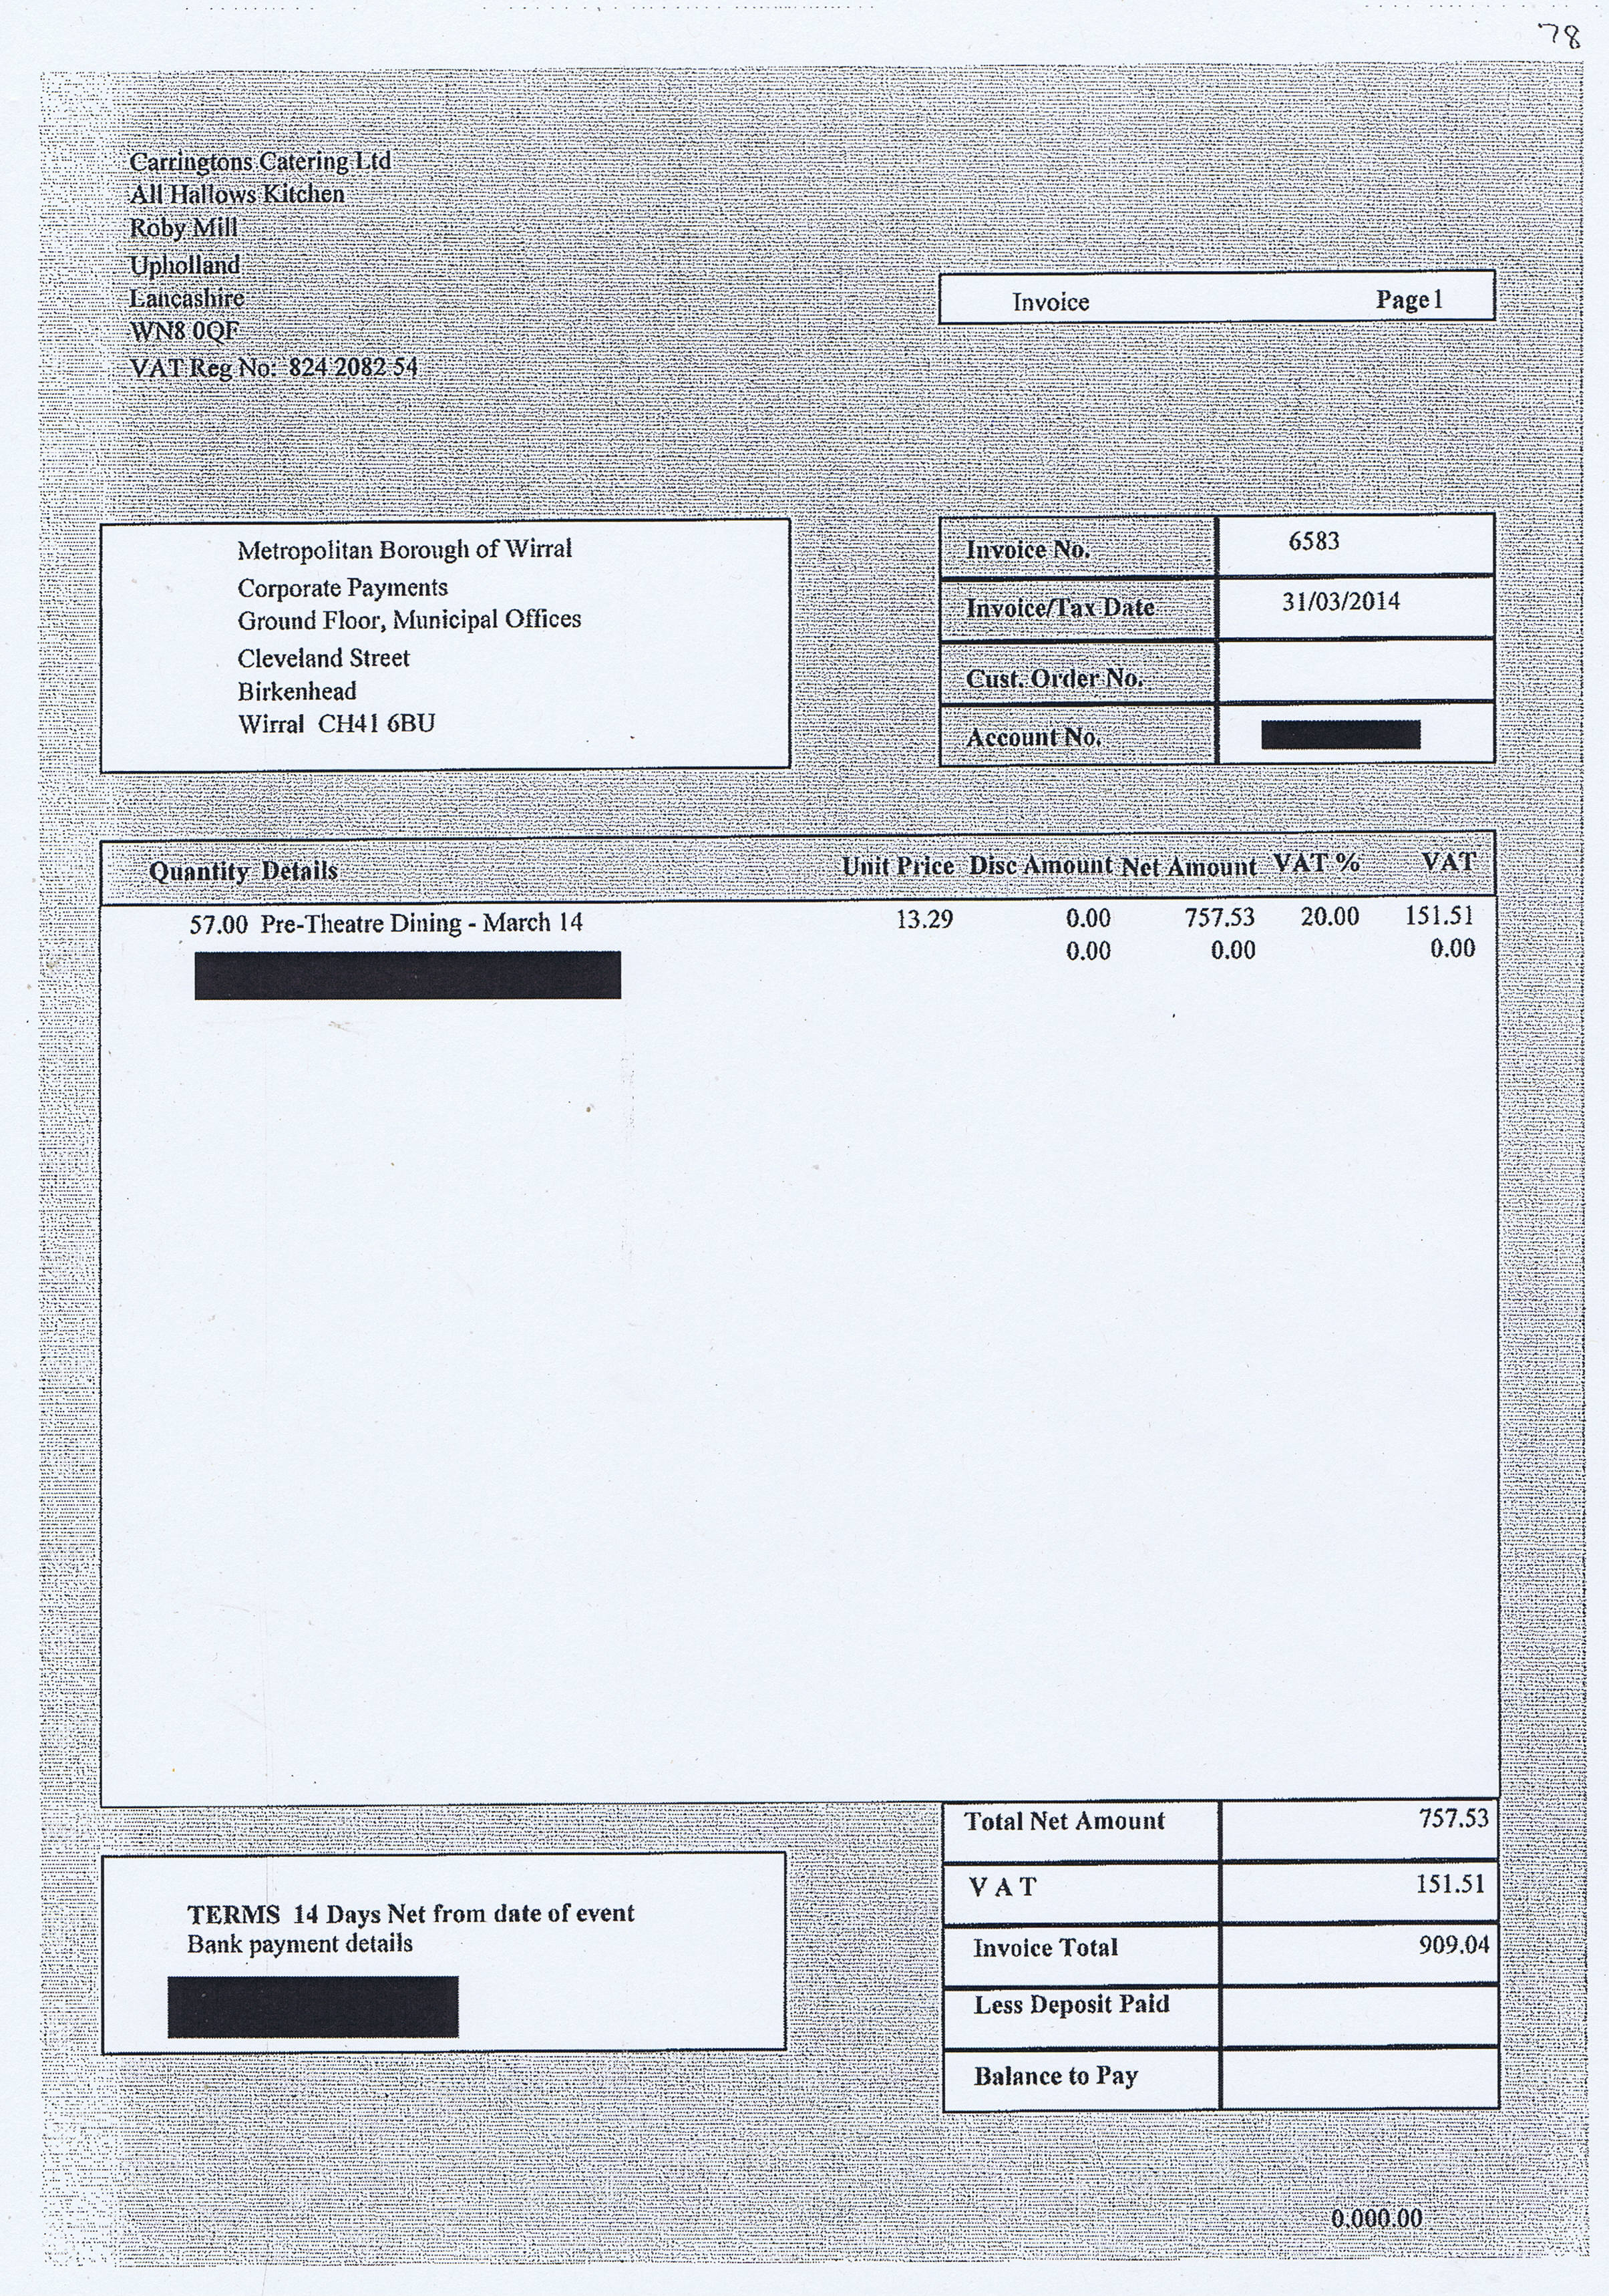 Wirral Council invoice 78 Carringtons Catering Ltd £909.04